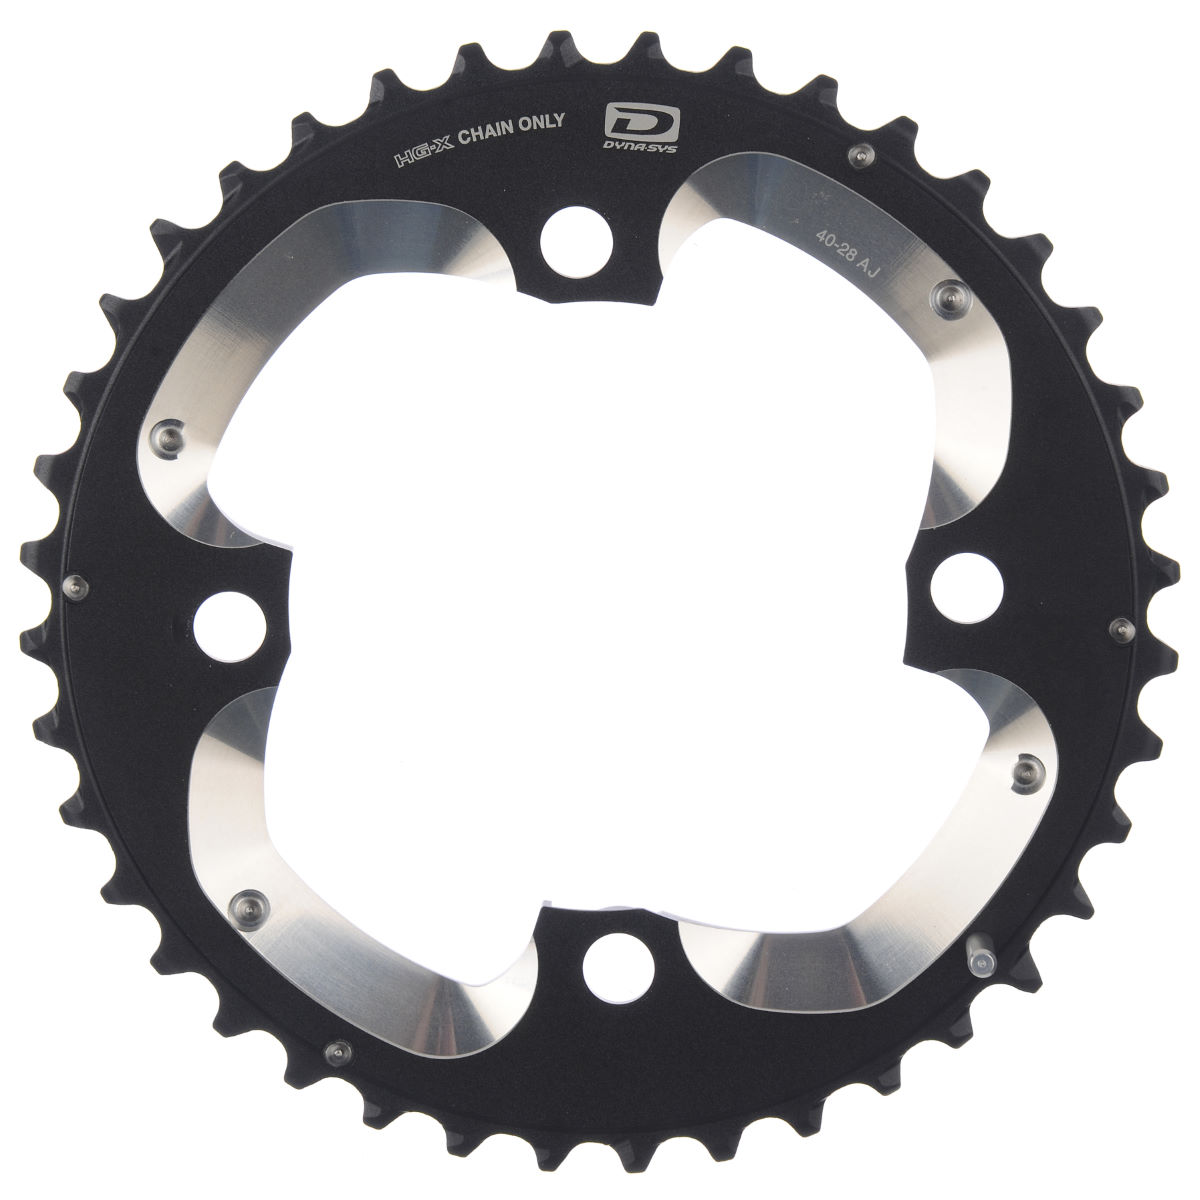 Shimano Xt Fcm785 10 Speed Double Chainring - Am Type 38t 10 Speed